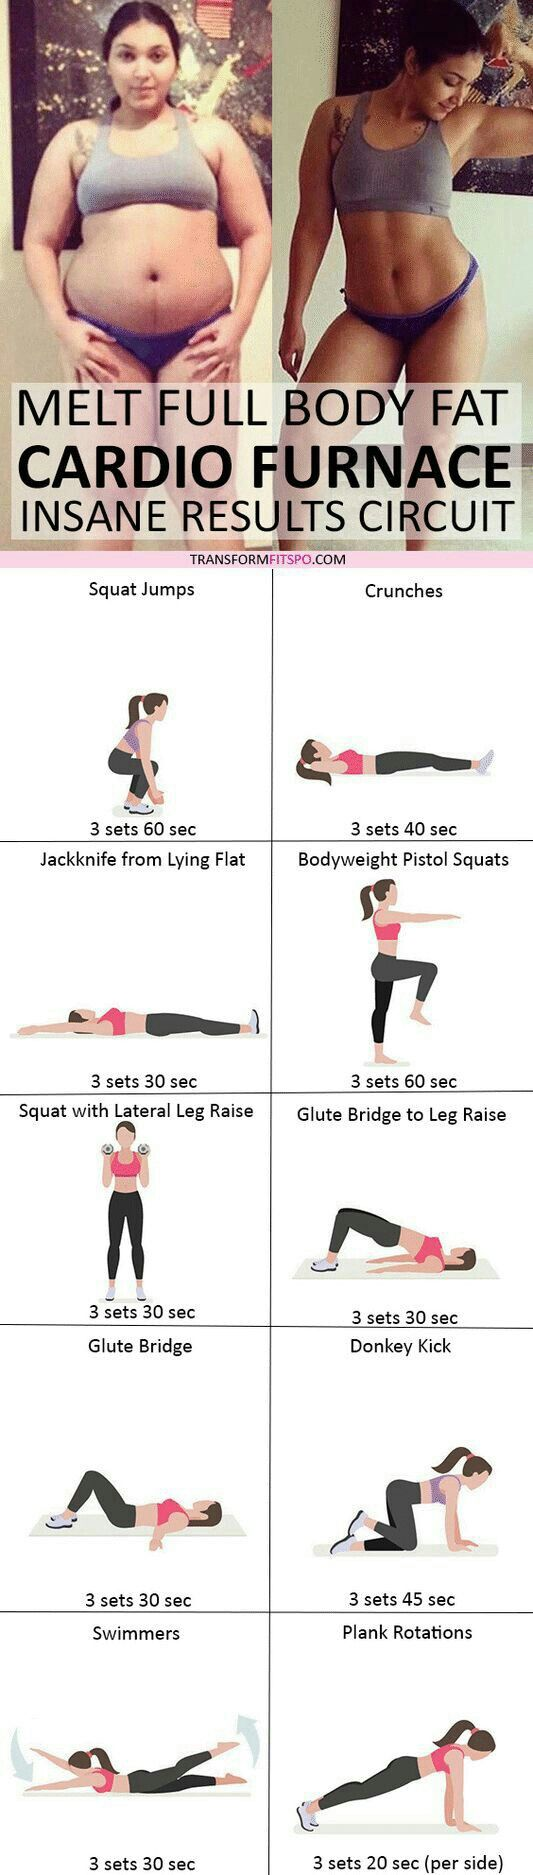 Cardio furnace workout  | Posted By: NewHowToLoseBellyFat.com